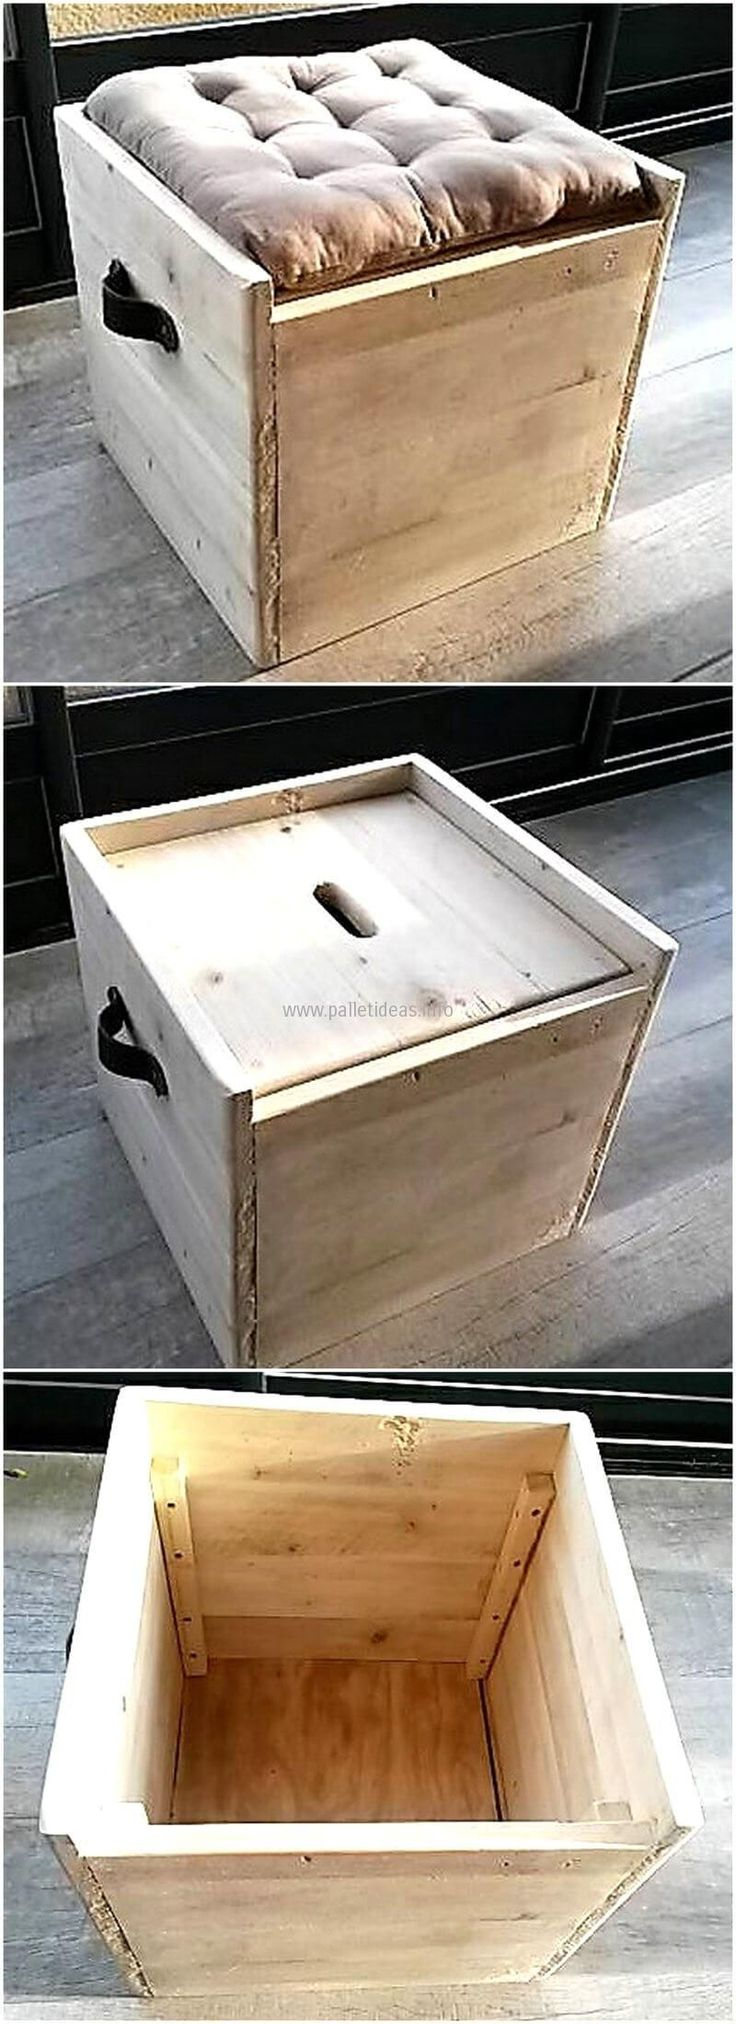 Now we are presenting an idea which is great because it serves 2 purposes, this is a seat as well as a chest to store the items. No one can think of the space it contains without viewing it. It is a great storage idea and it is amazing in look.